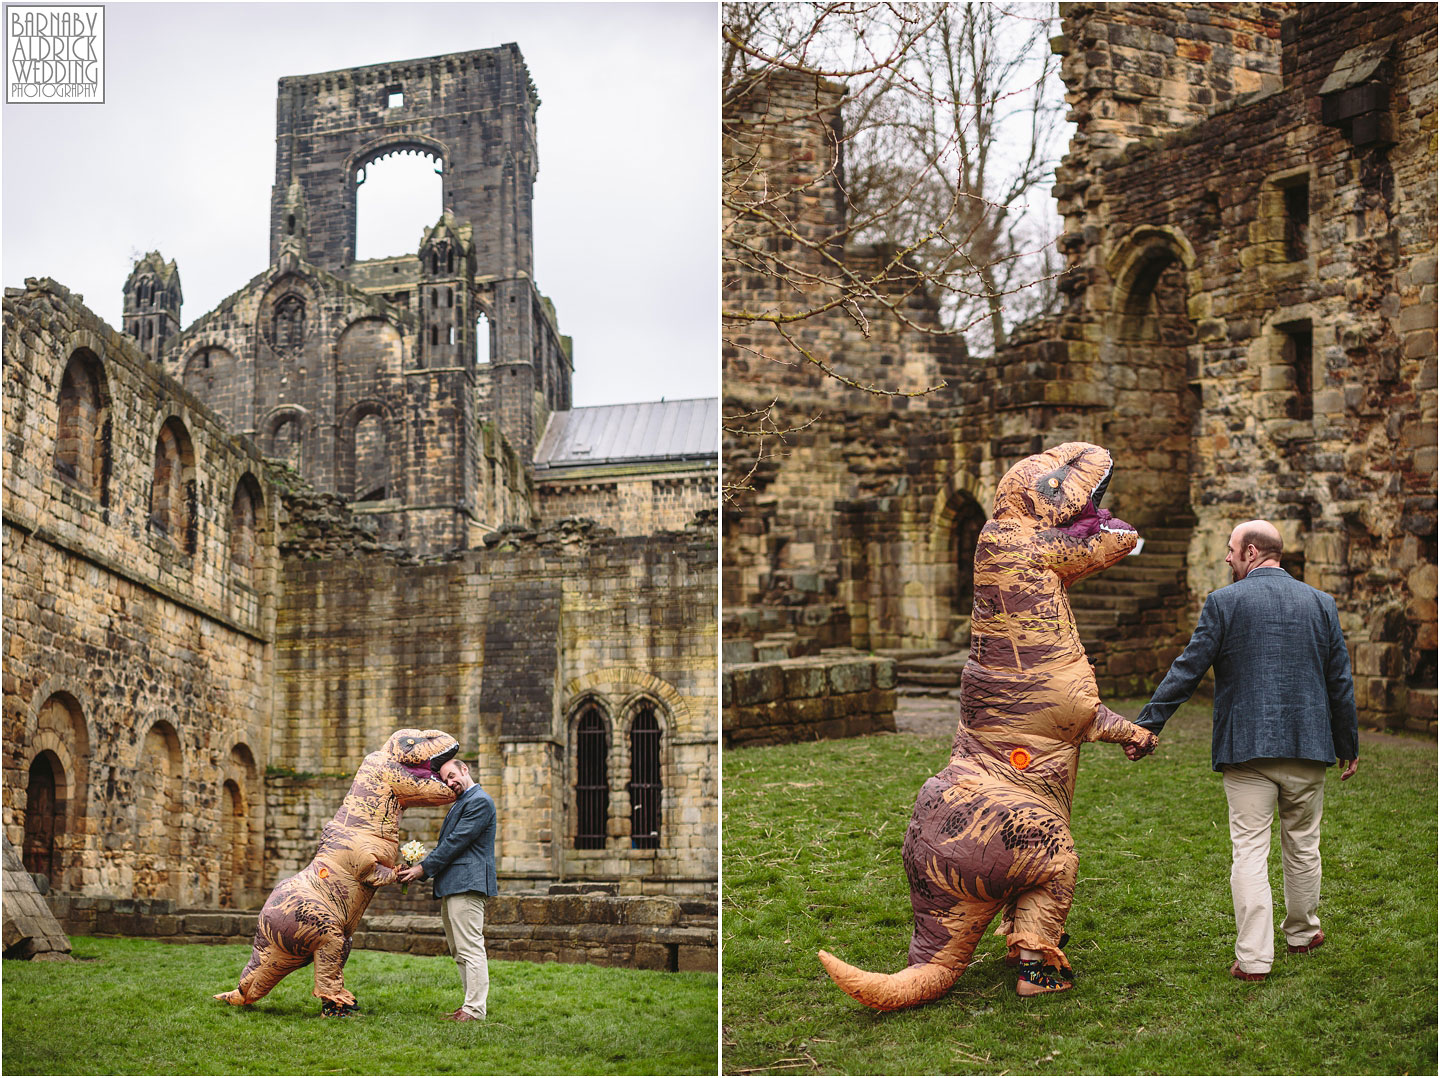 T-Res Fancy Dress Pre-Wedding Shoot, Dinosaur wedding outfit, Fancy dress engagement shoot ideas, wild engagement shoot ideas